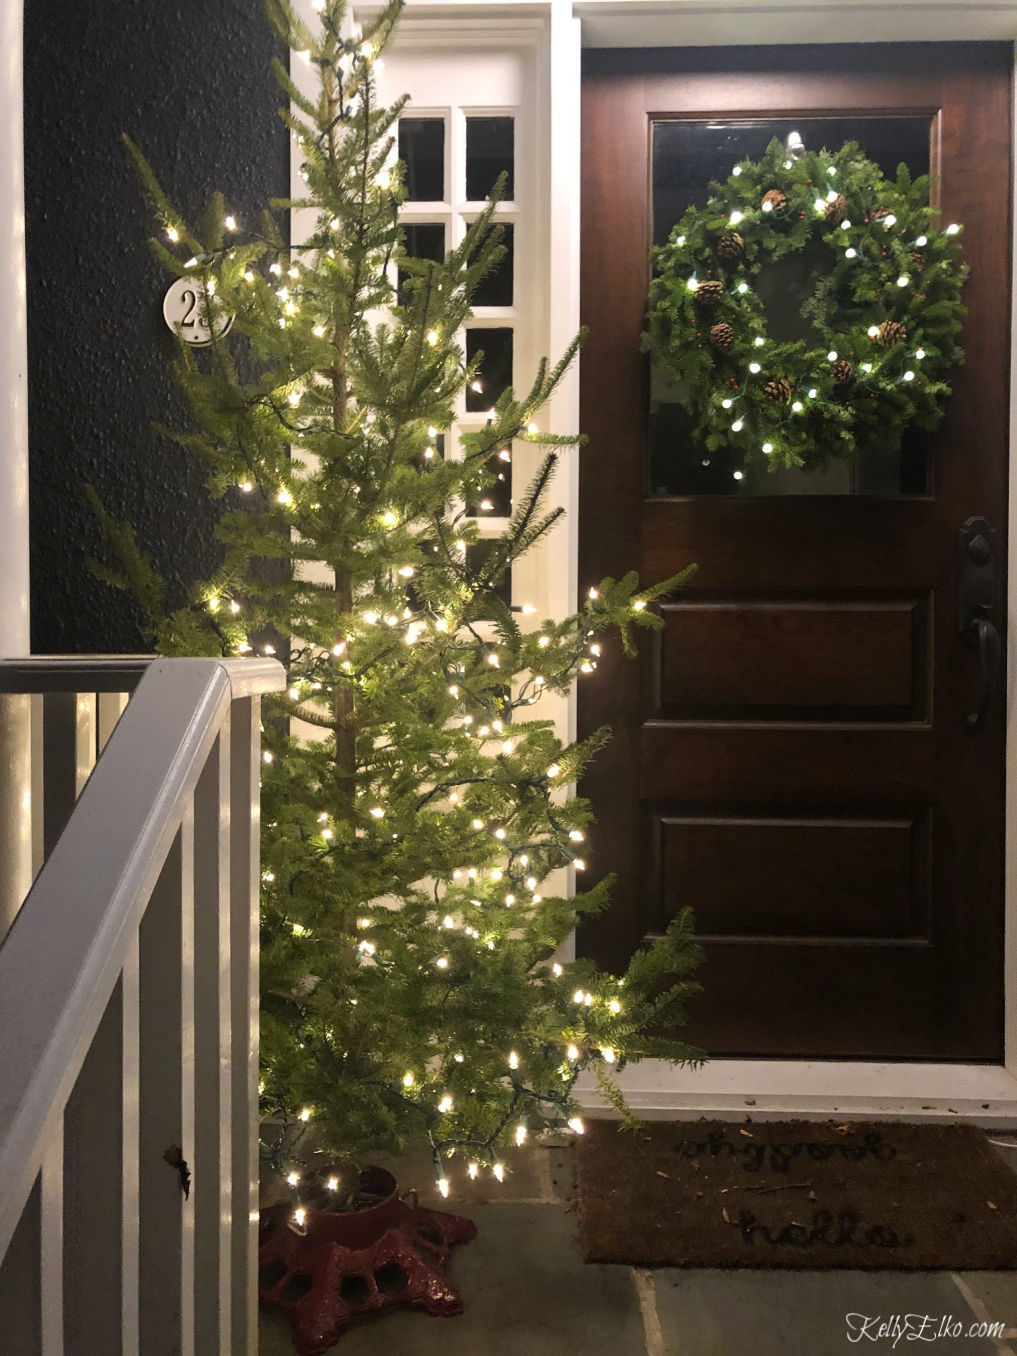 Love this real Christmas tree on the front porch kellyelko.com #christmastree #livechristmastree #christmasporch #christmasporchdecor #christmaslights #sparsetree #kellyelko